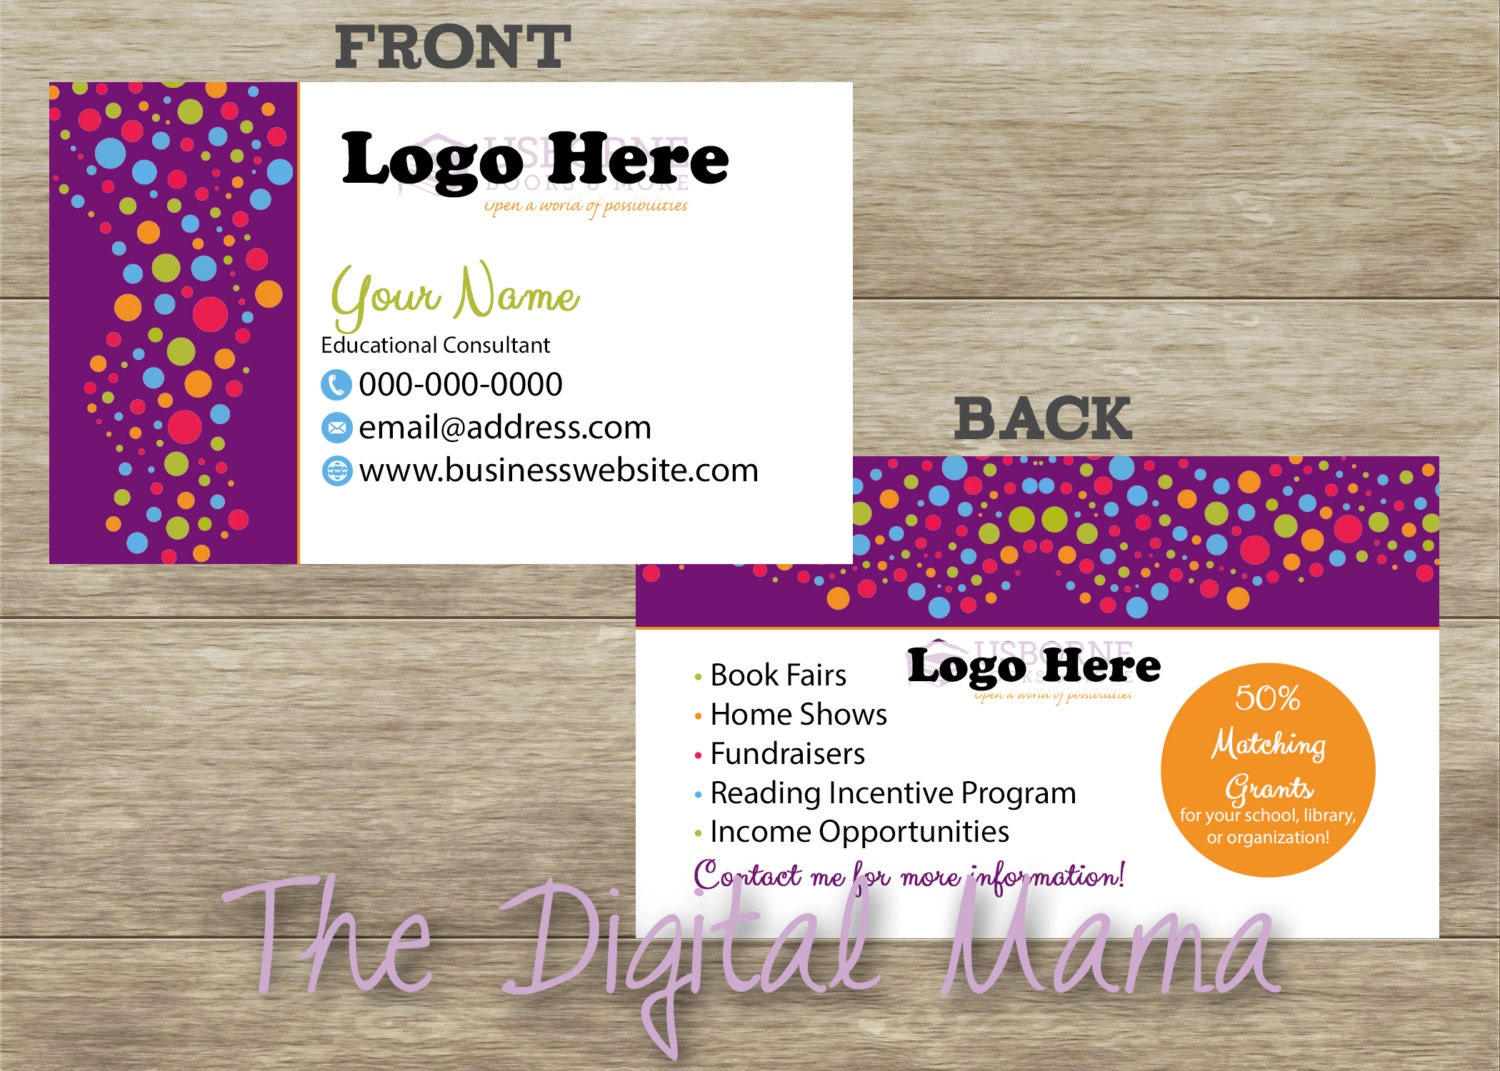 books business card template | datariouruguay